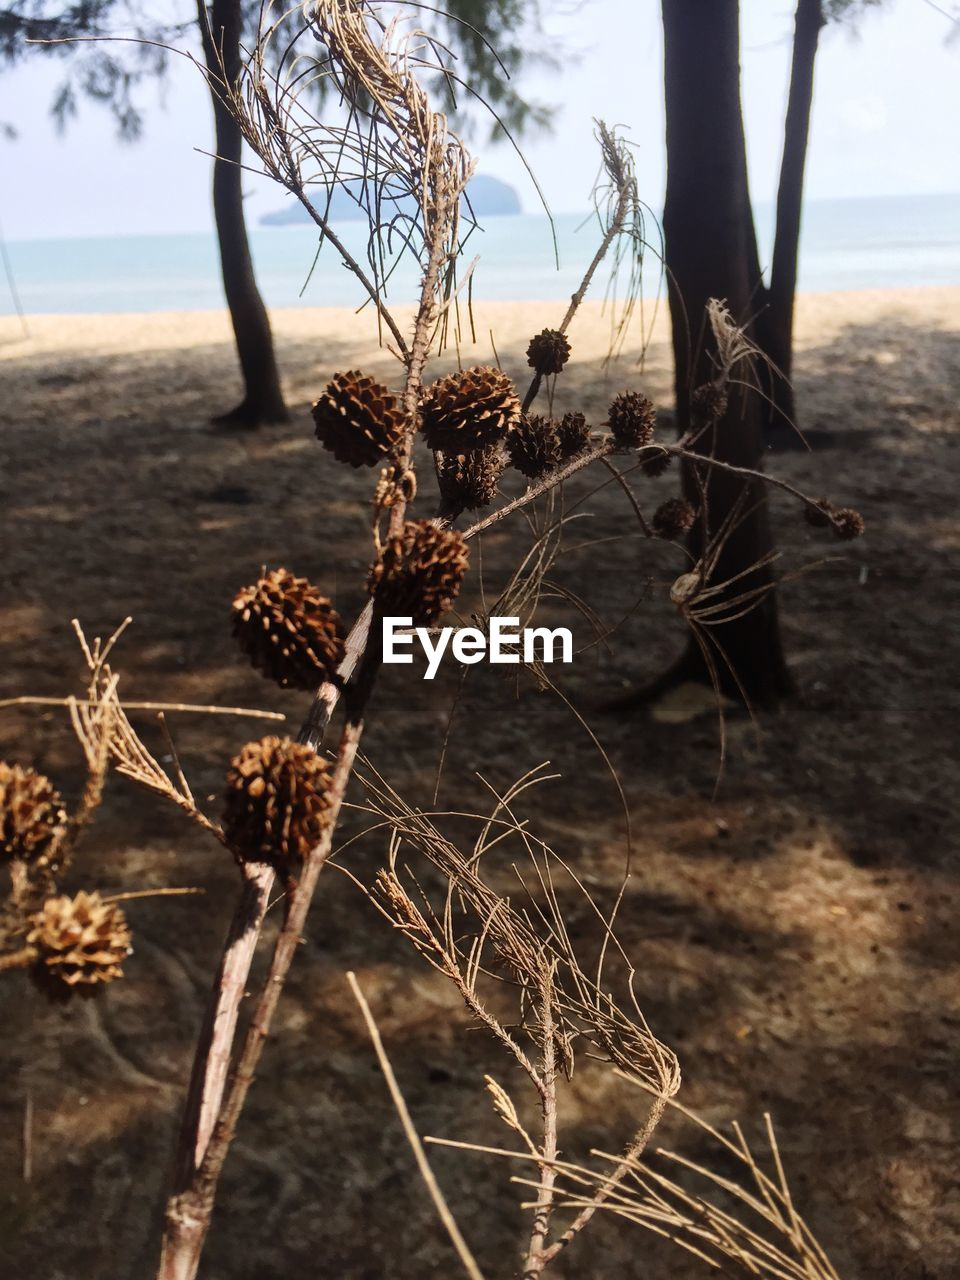 plant, focus on foreground, nature, land, tranquility, day, close-up, growth, beauty in nature, field, outdoors, dry, no people, sky, dried plant, water, sunlight, fragility, plant stem, dead plant, wilted plant, dried